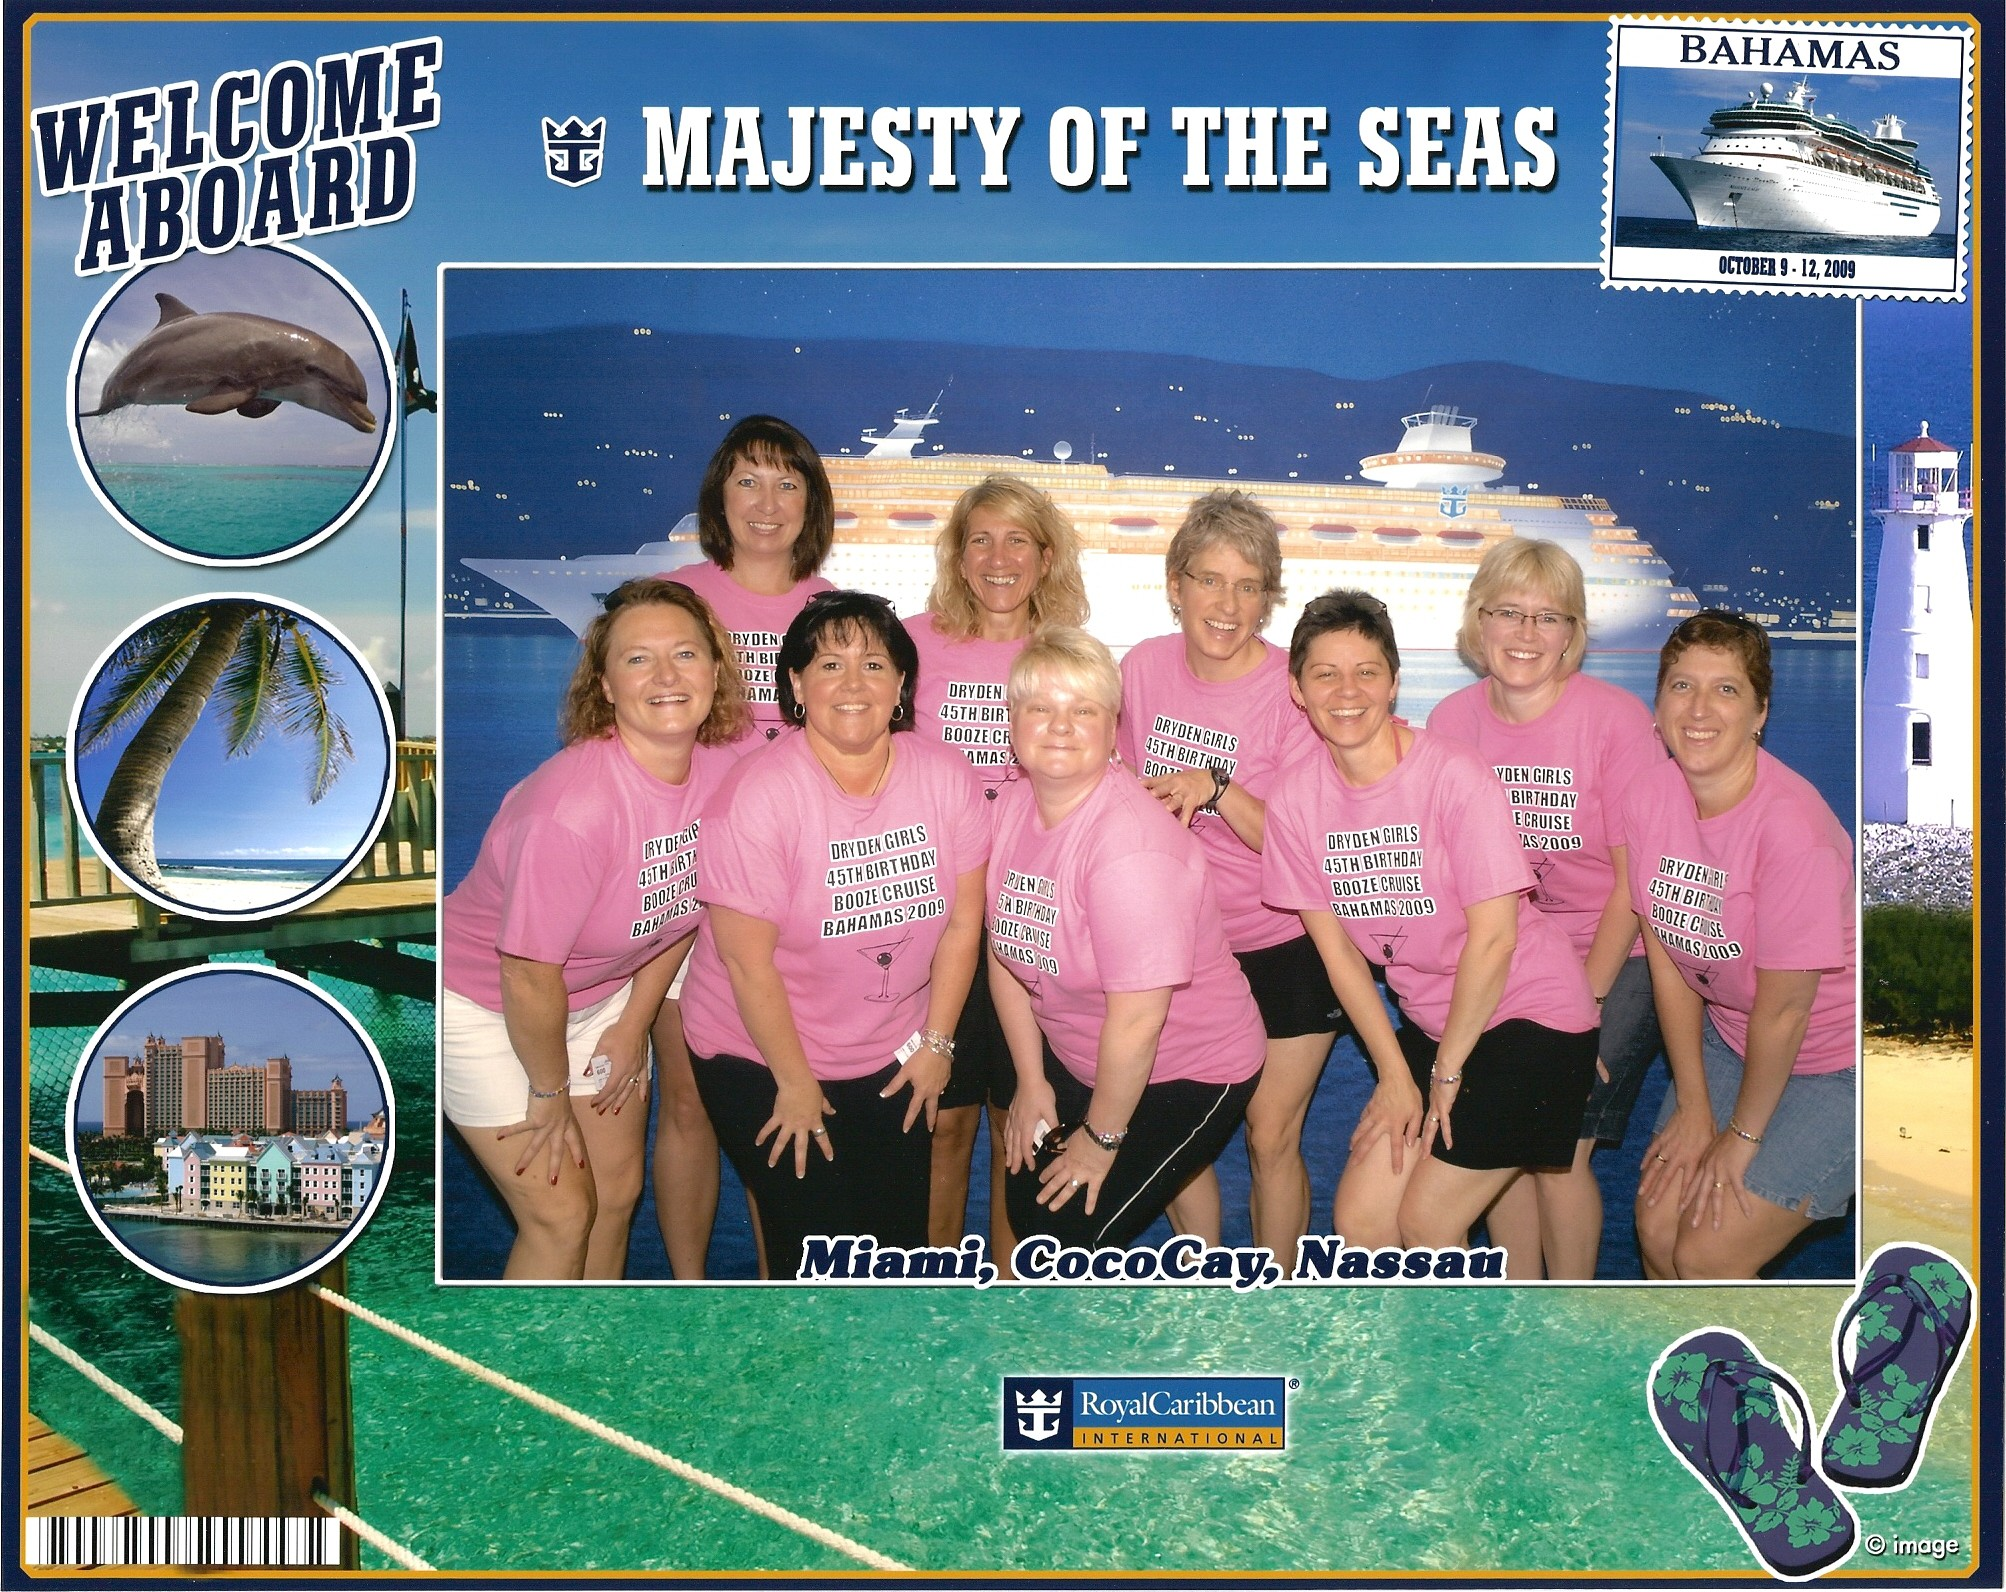 Dryden Girls 45 Th Birthday Booze Cruise T Shirt Photo